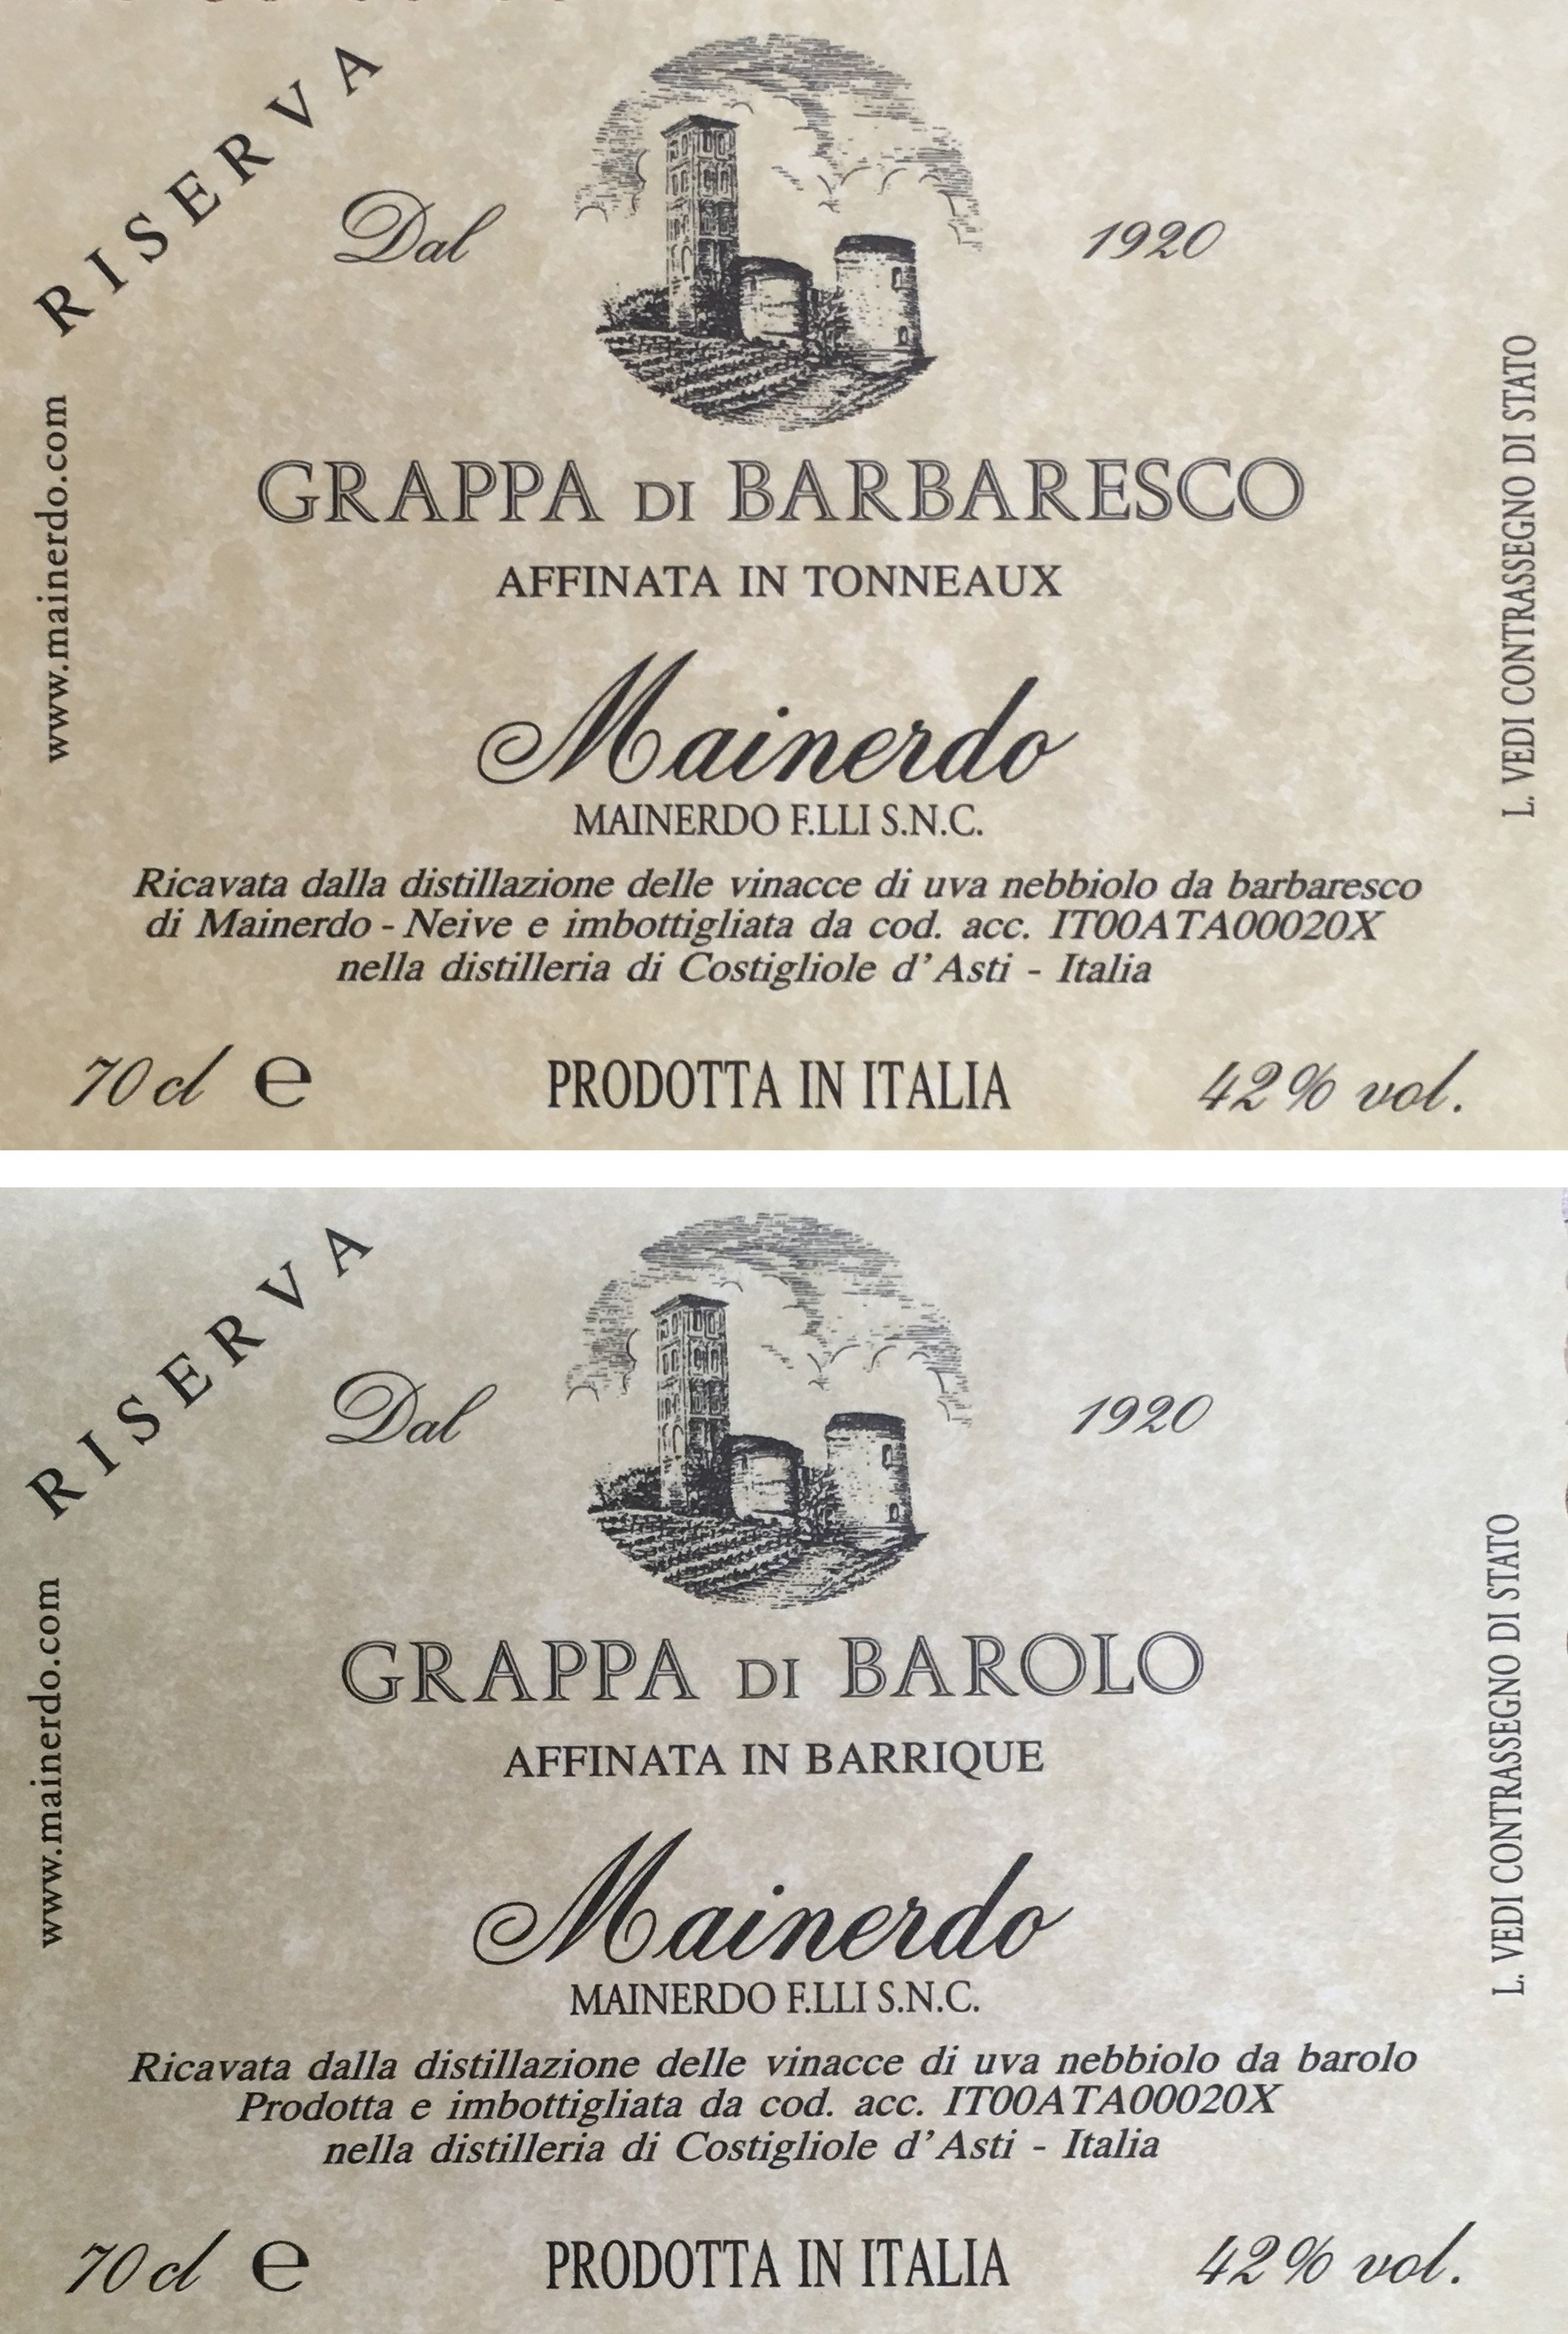 Aged Grappa di Barbaresco/Barolo